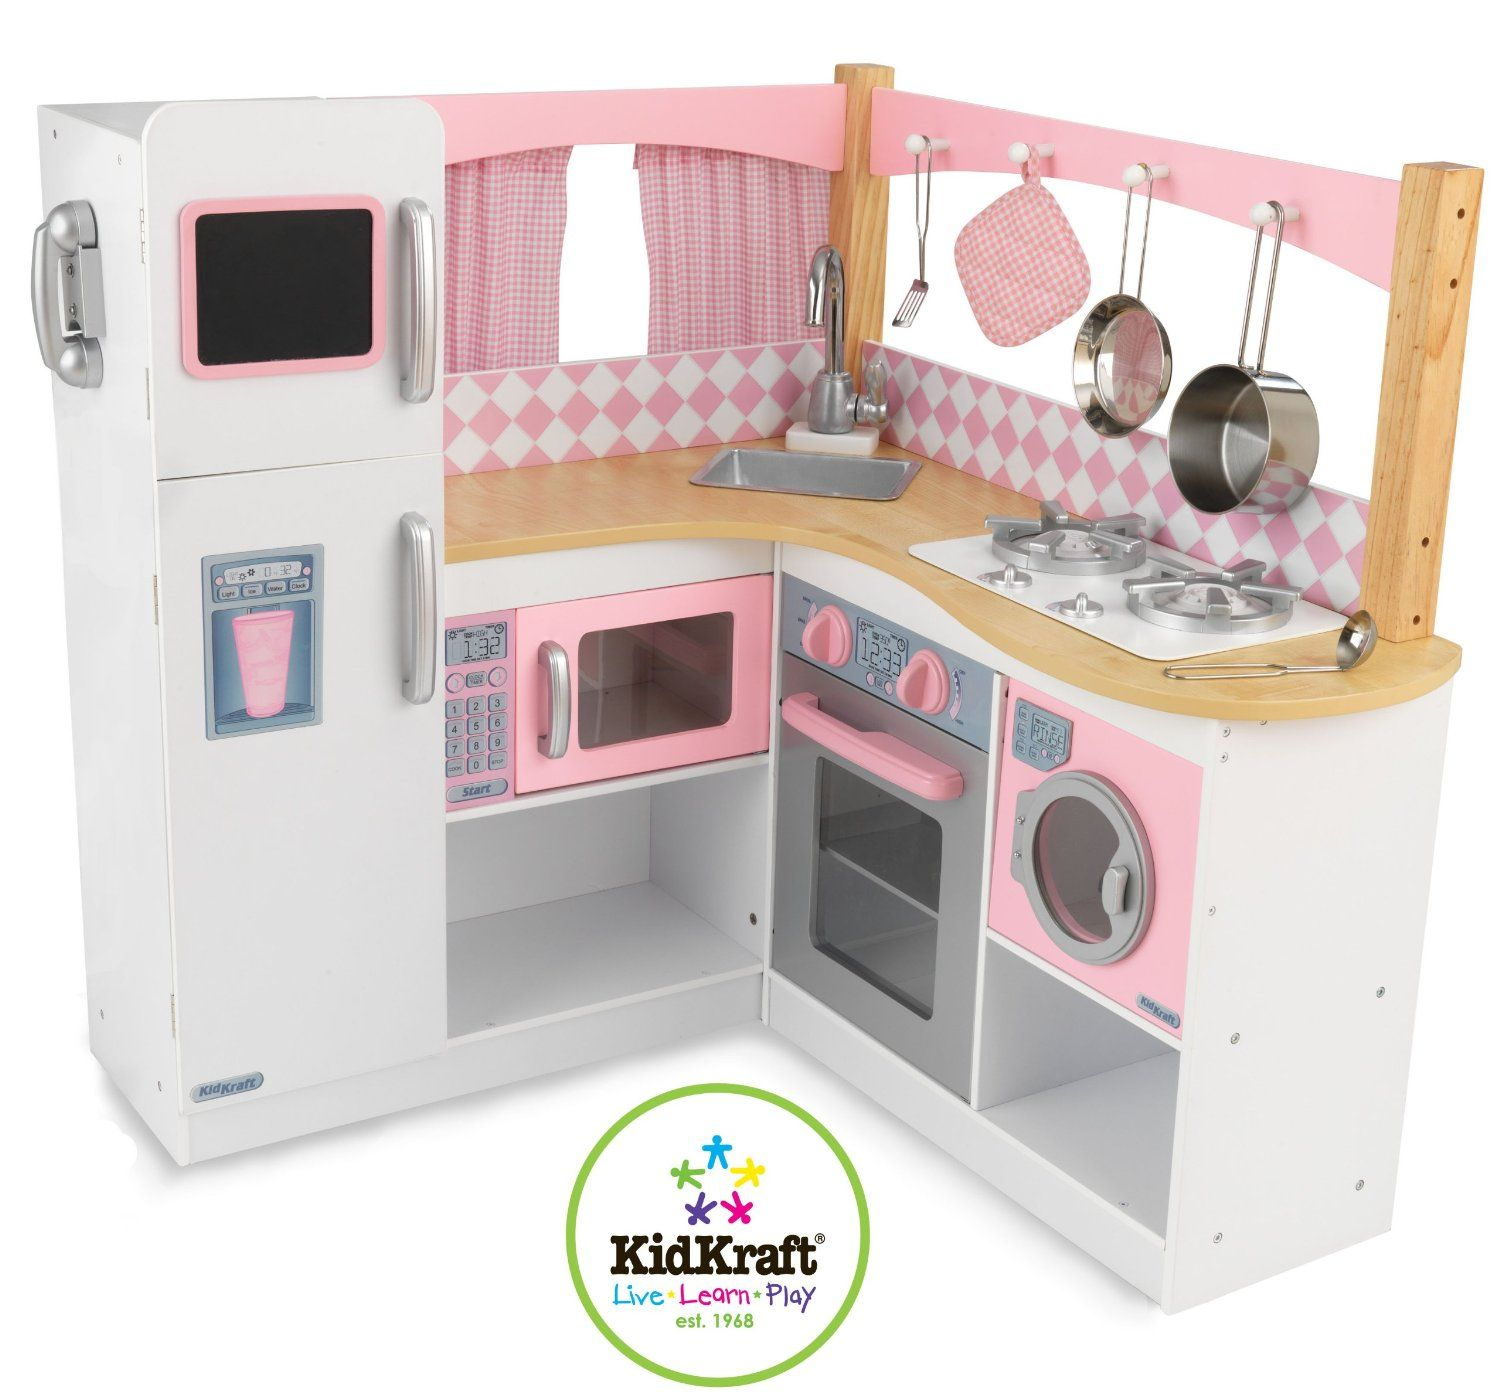 the kidkraft grand gourmet corner kitchen is an all in one kitchen